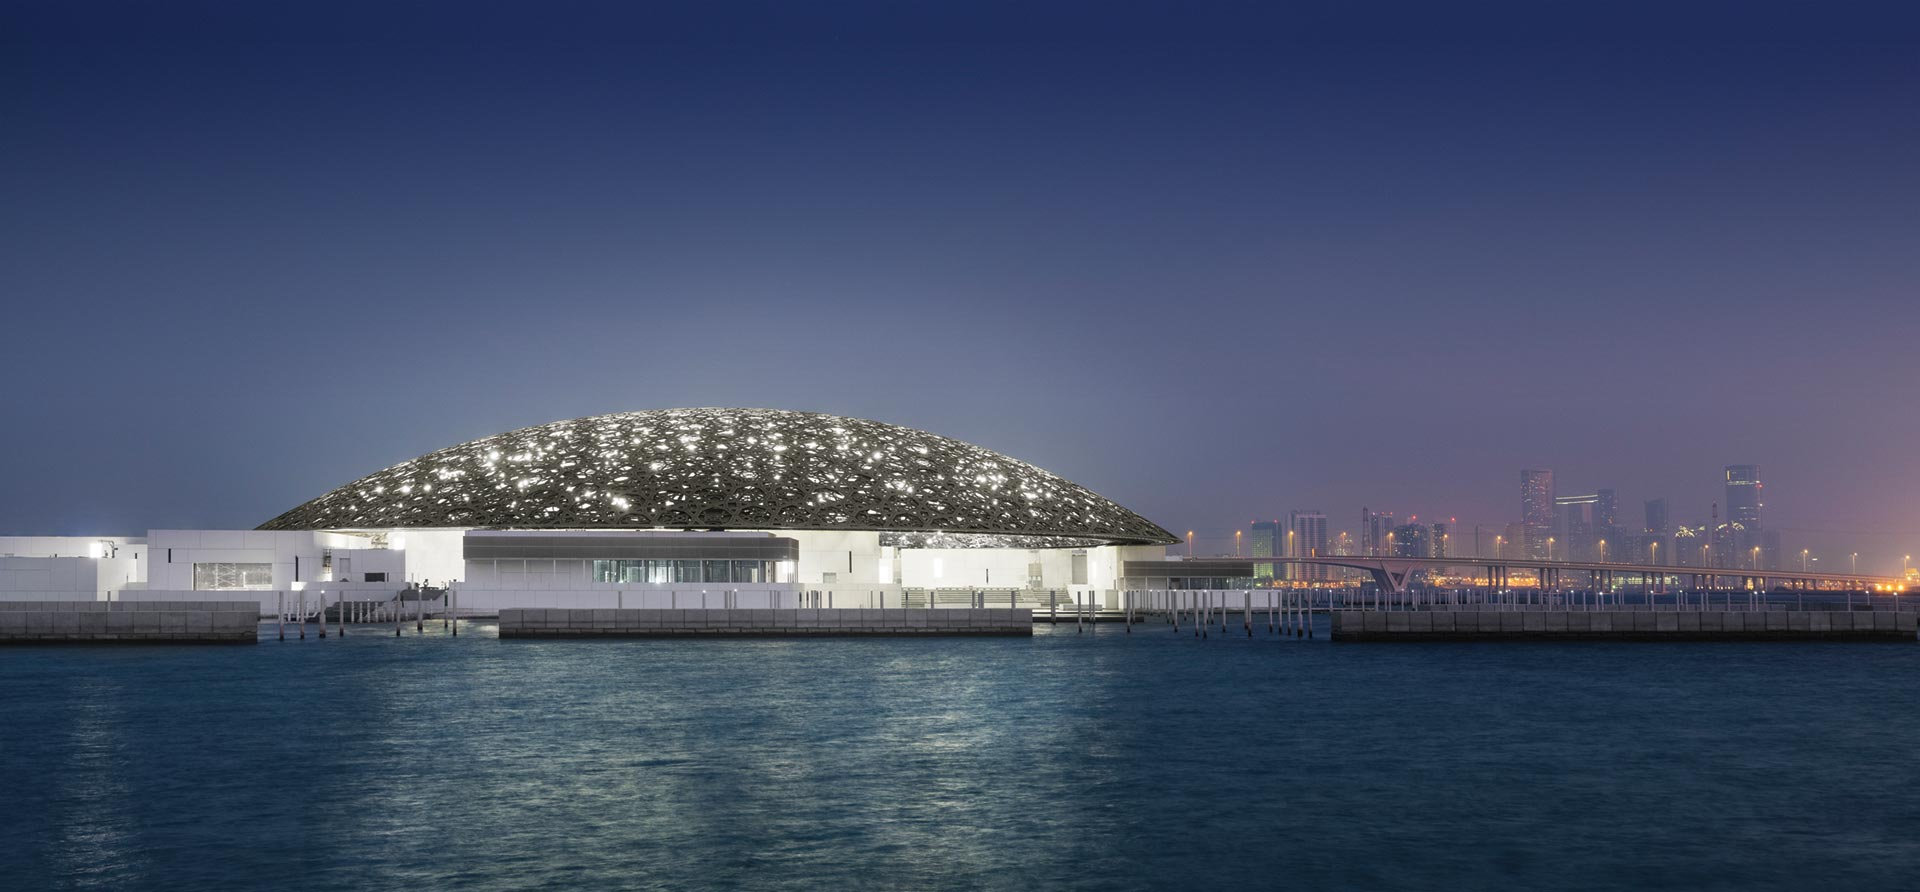 Louvre Abu Dhabi Photo Courtesy: Mohamed-Somji